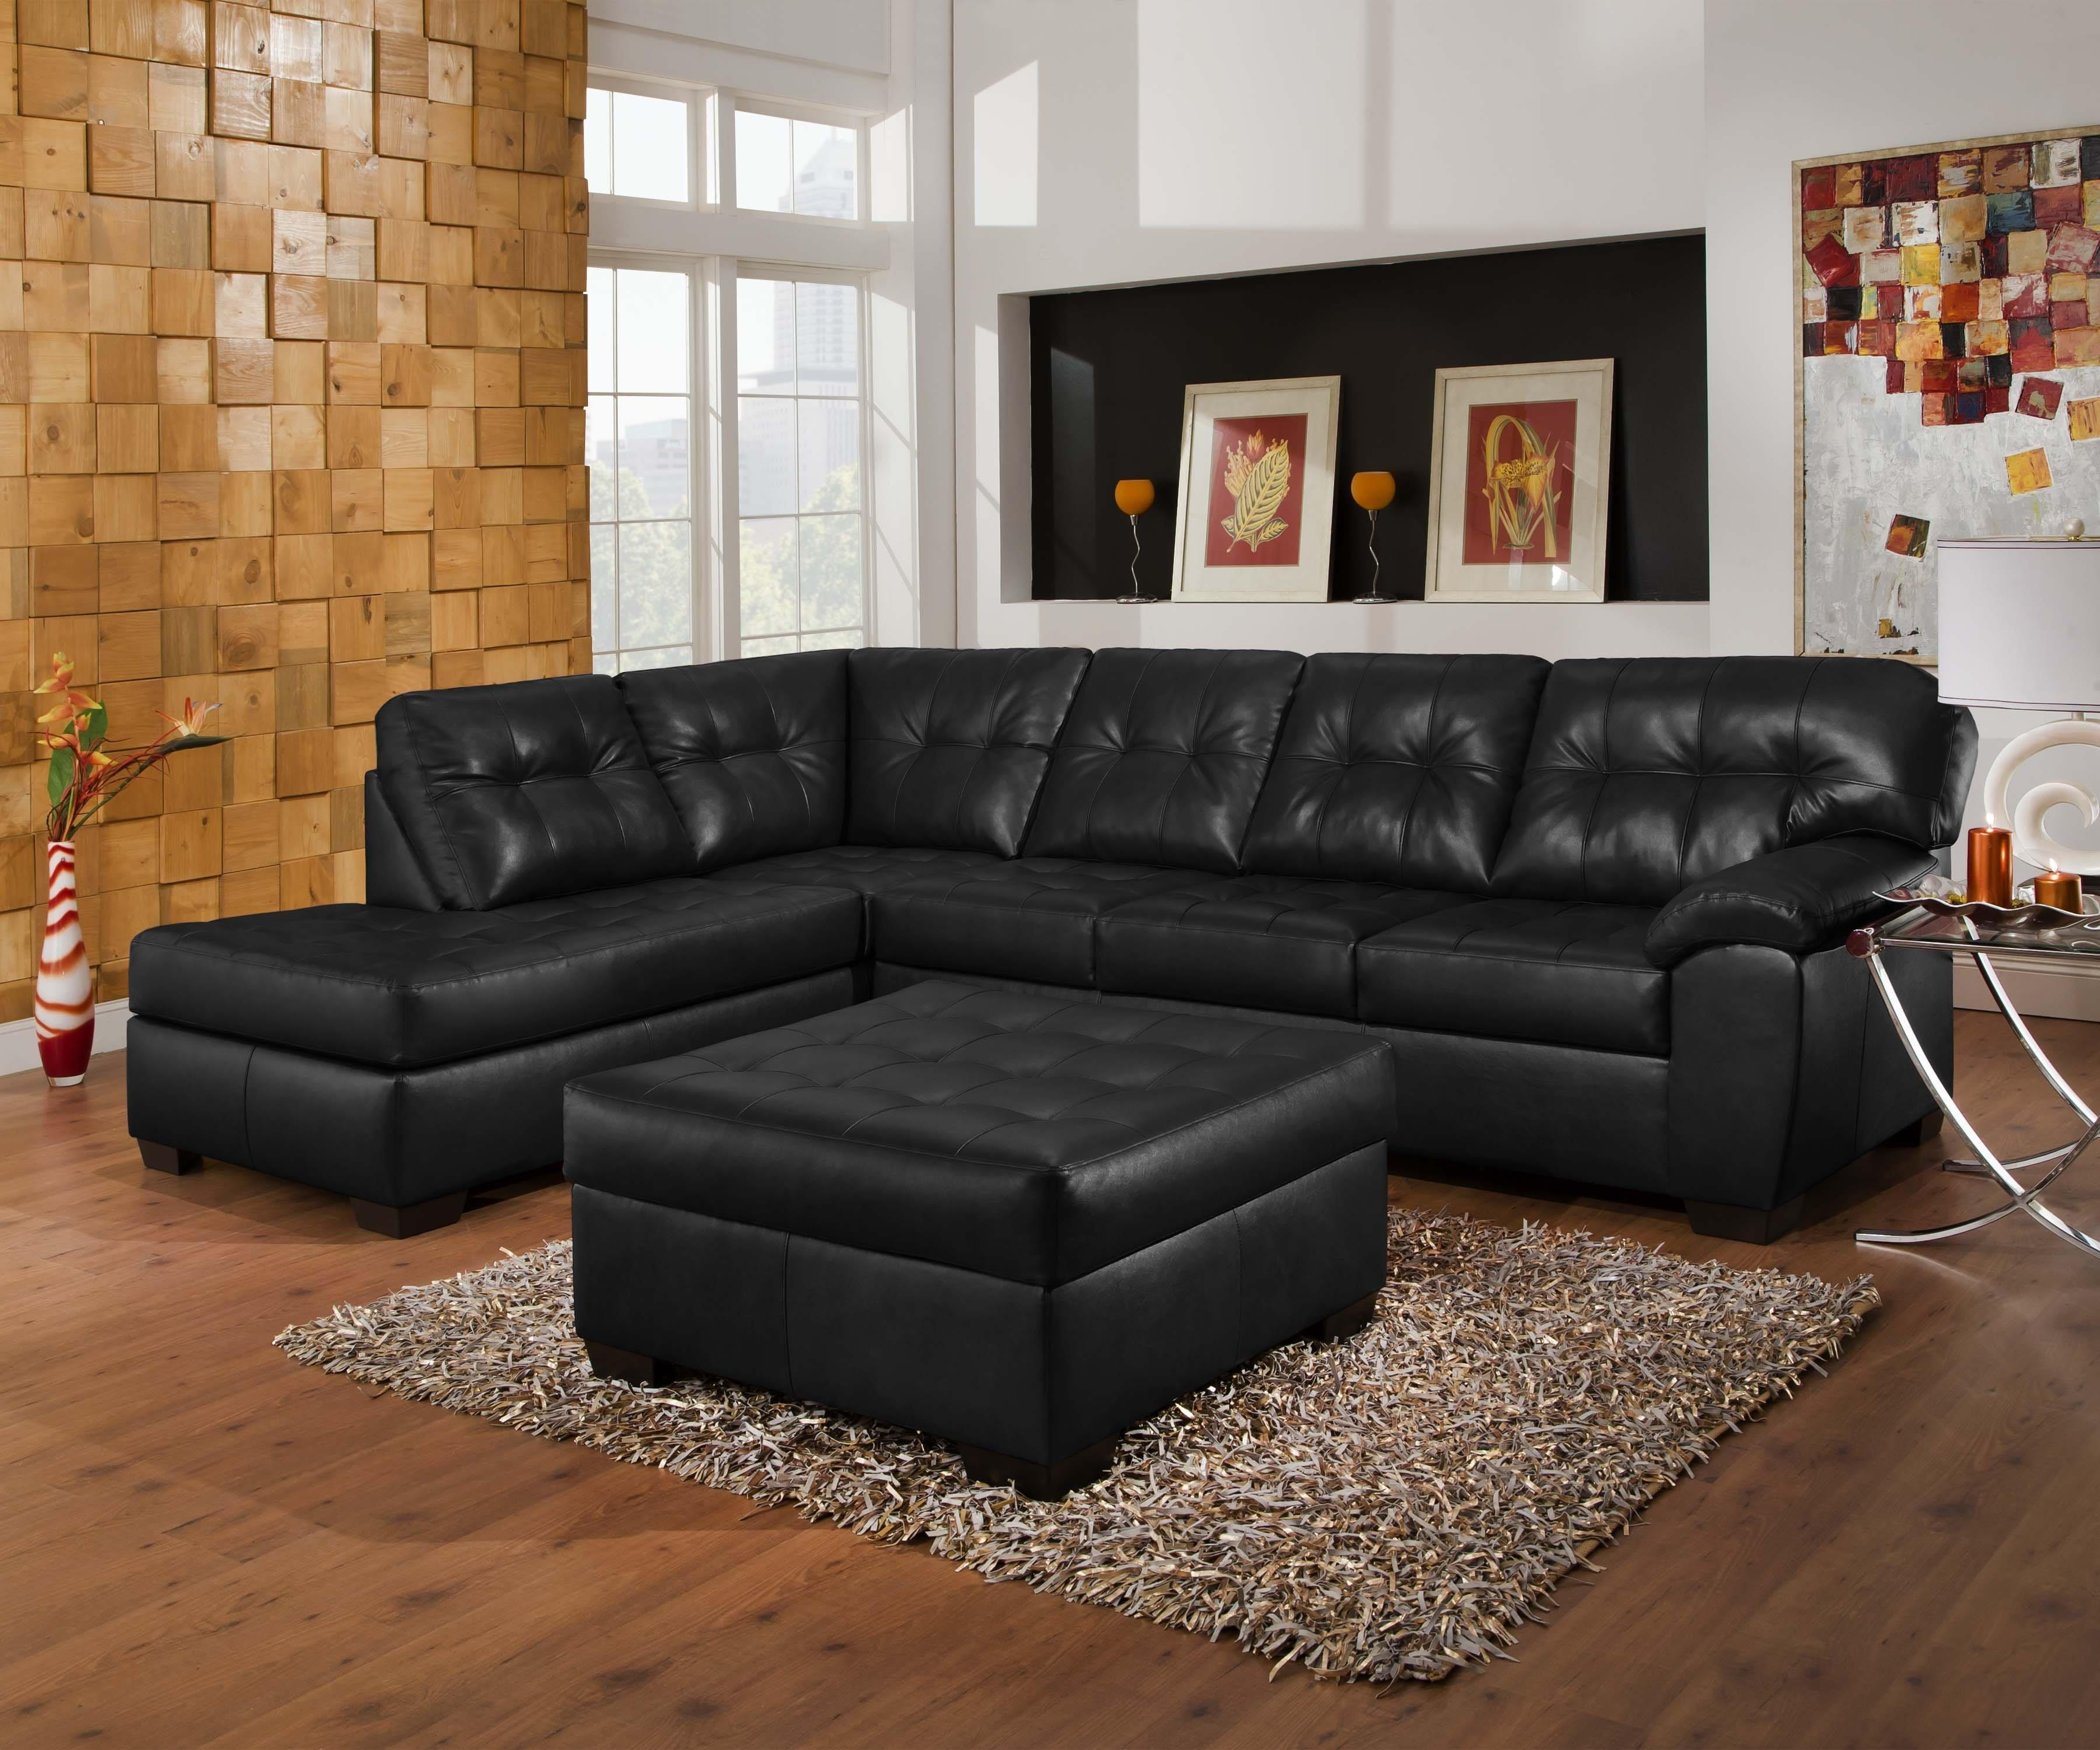 Simmons Upholstery 9568 Casual Sectional Sofa With Tufted